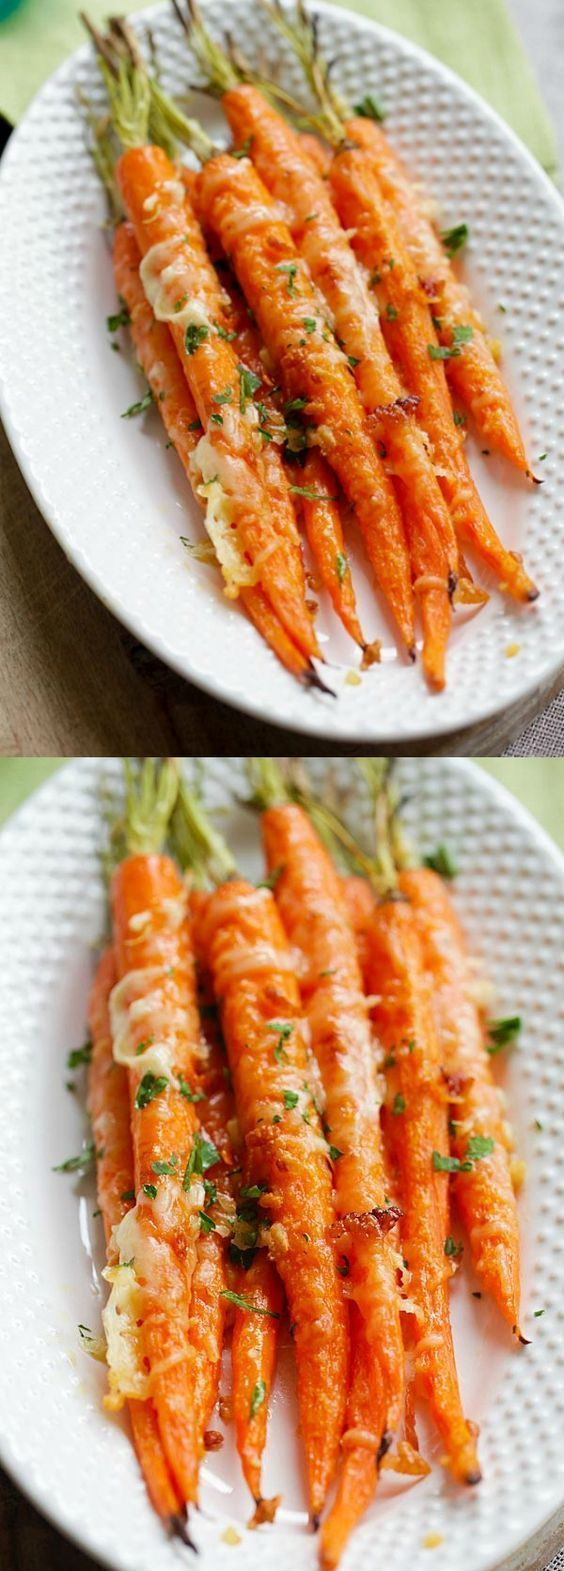 Garlic Parmesan Roasted Carrots - Oven roasted carrots with butter, garlic and Parmesan cheese. The easiest and most delicious side dish ever   http://rasamalaysia.com